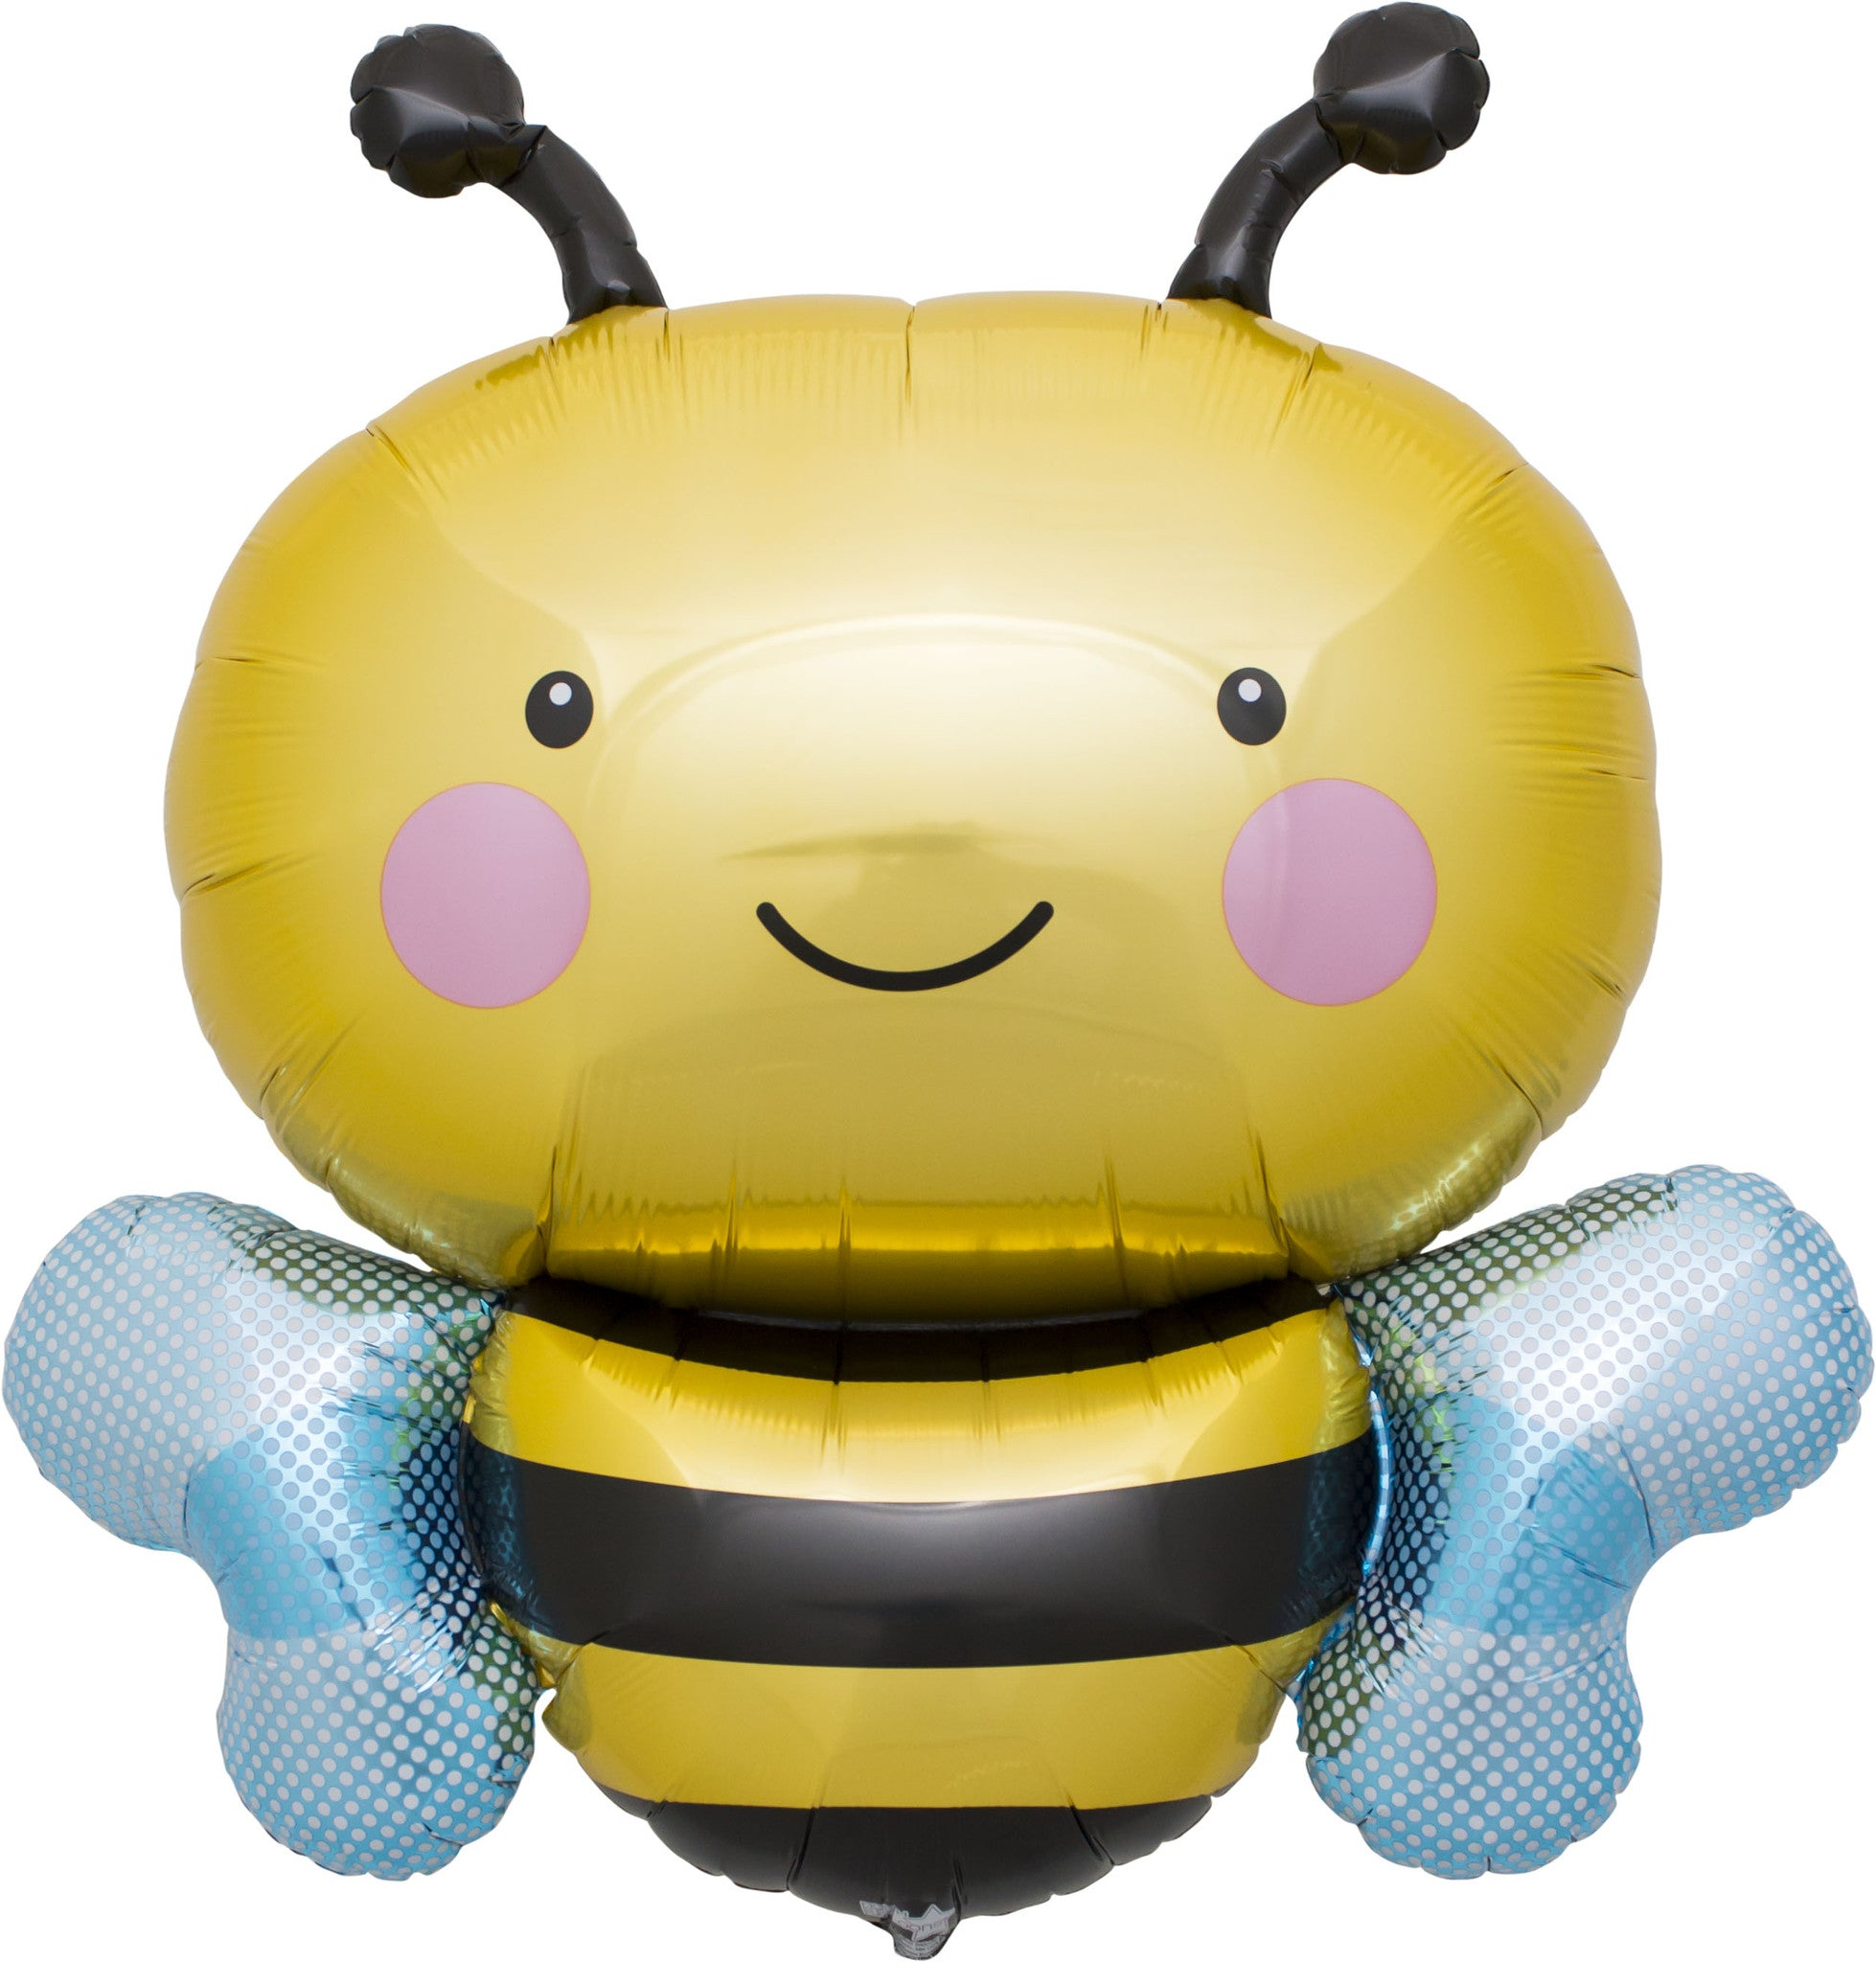 Bumble Bee Foil Balloon - The Sweet Hostess